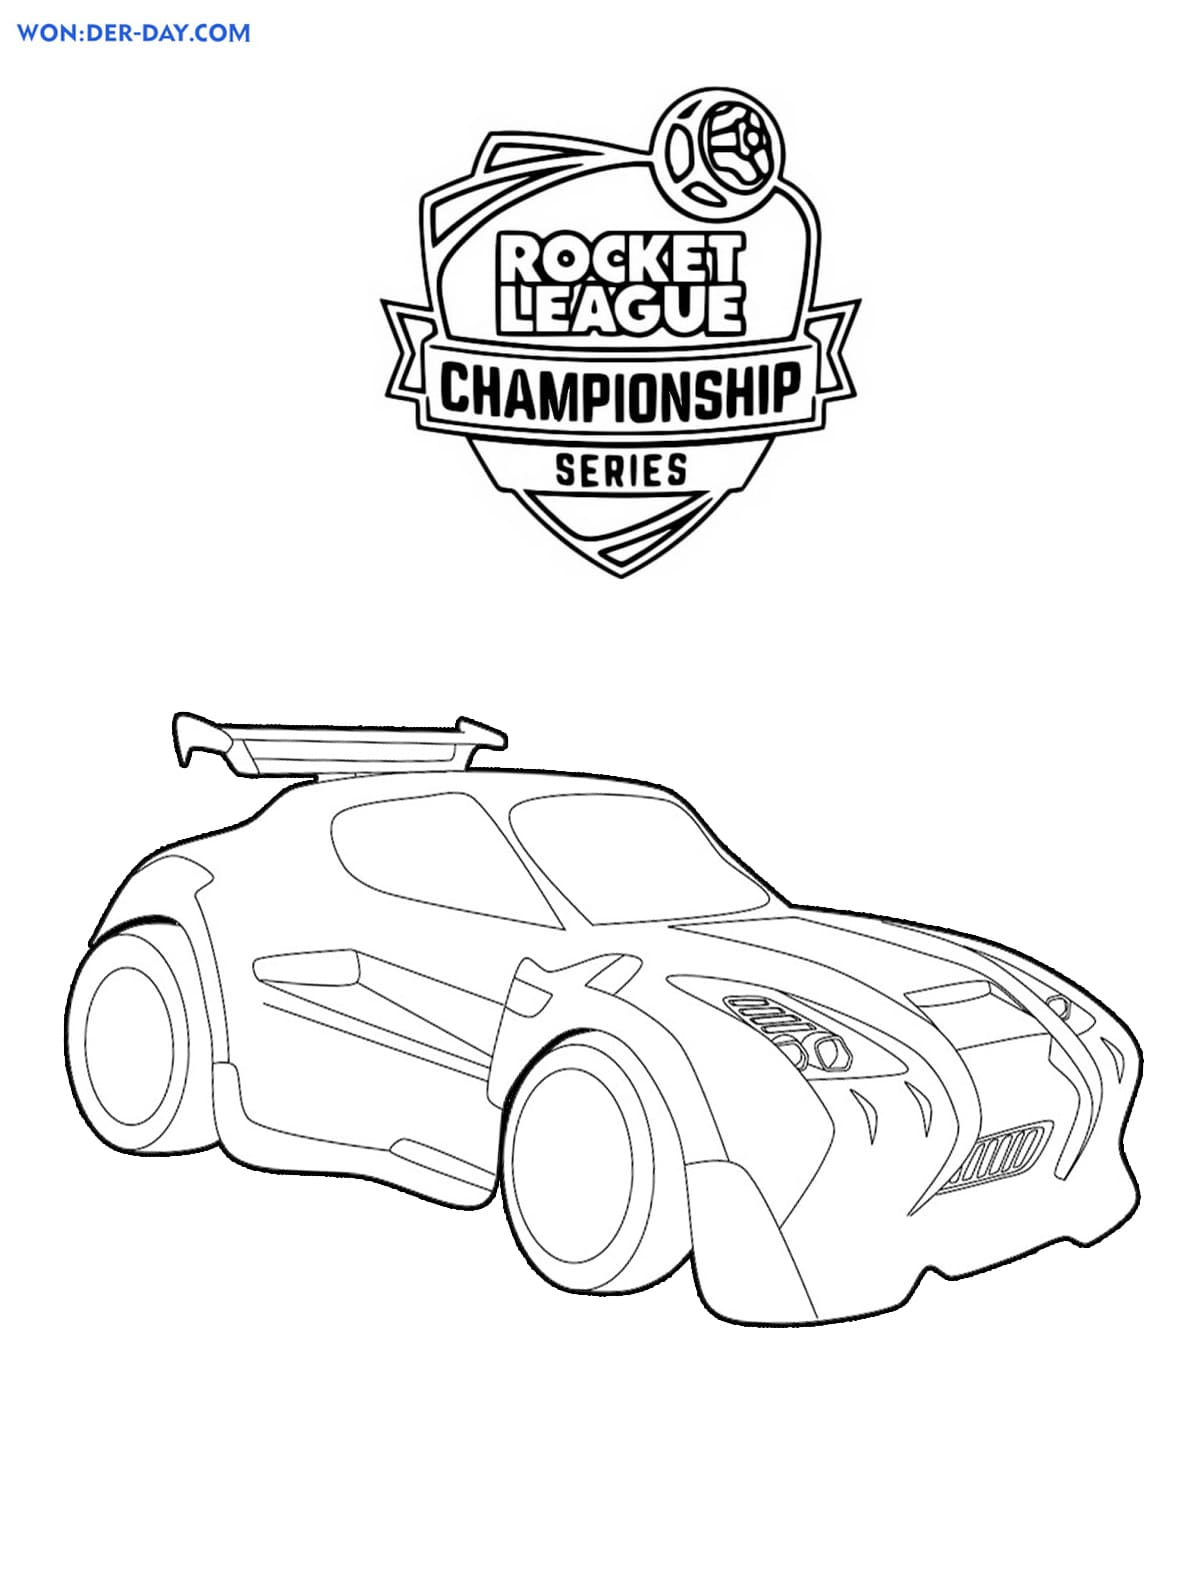 Rocket League Coloring Pages Print For Free Wonder Day